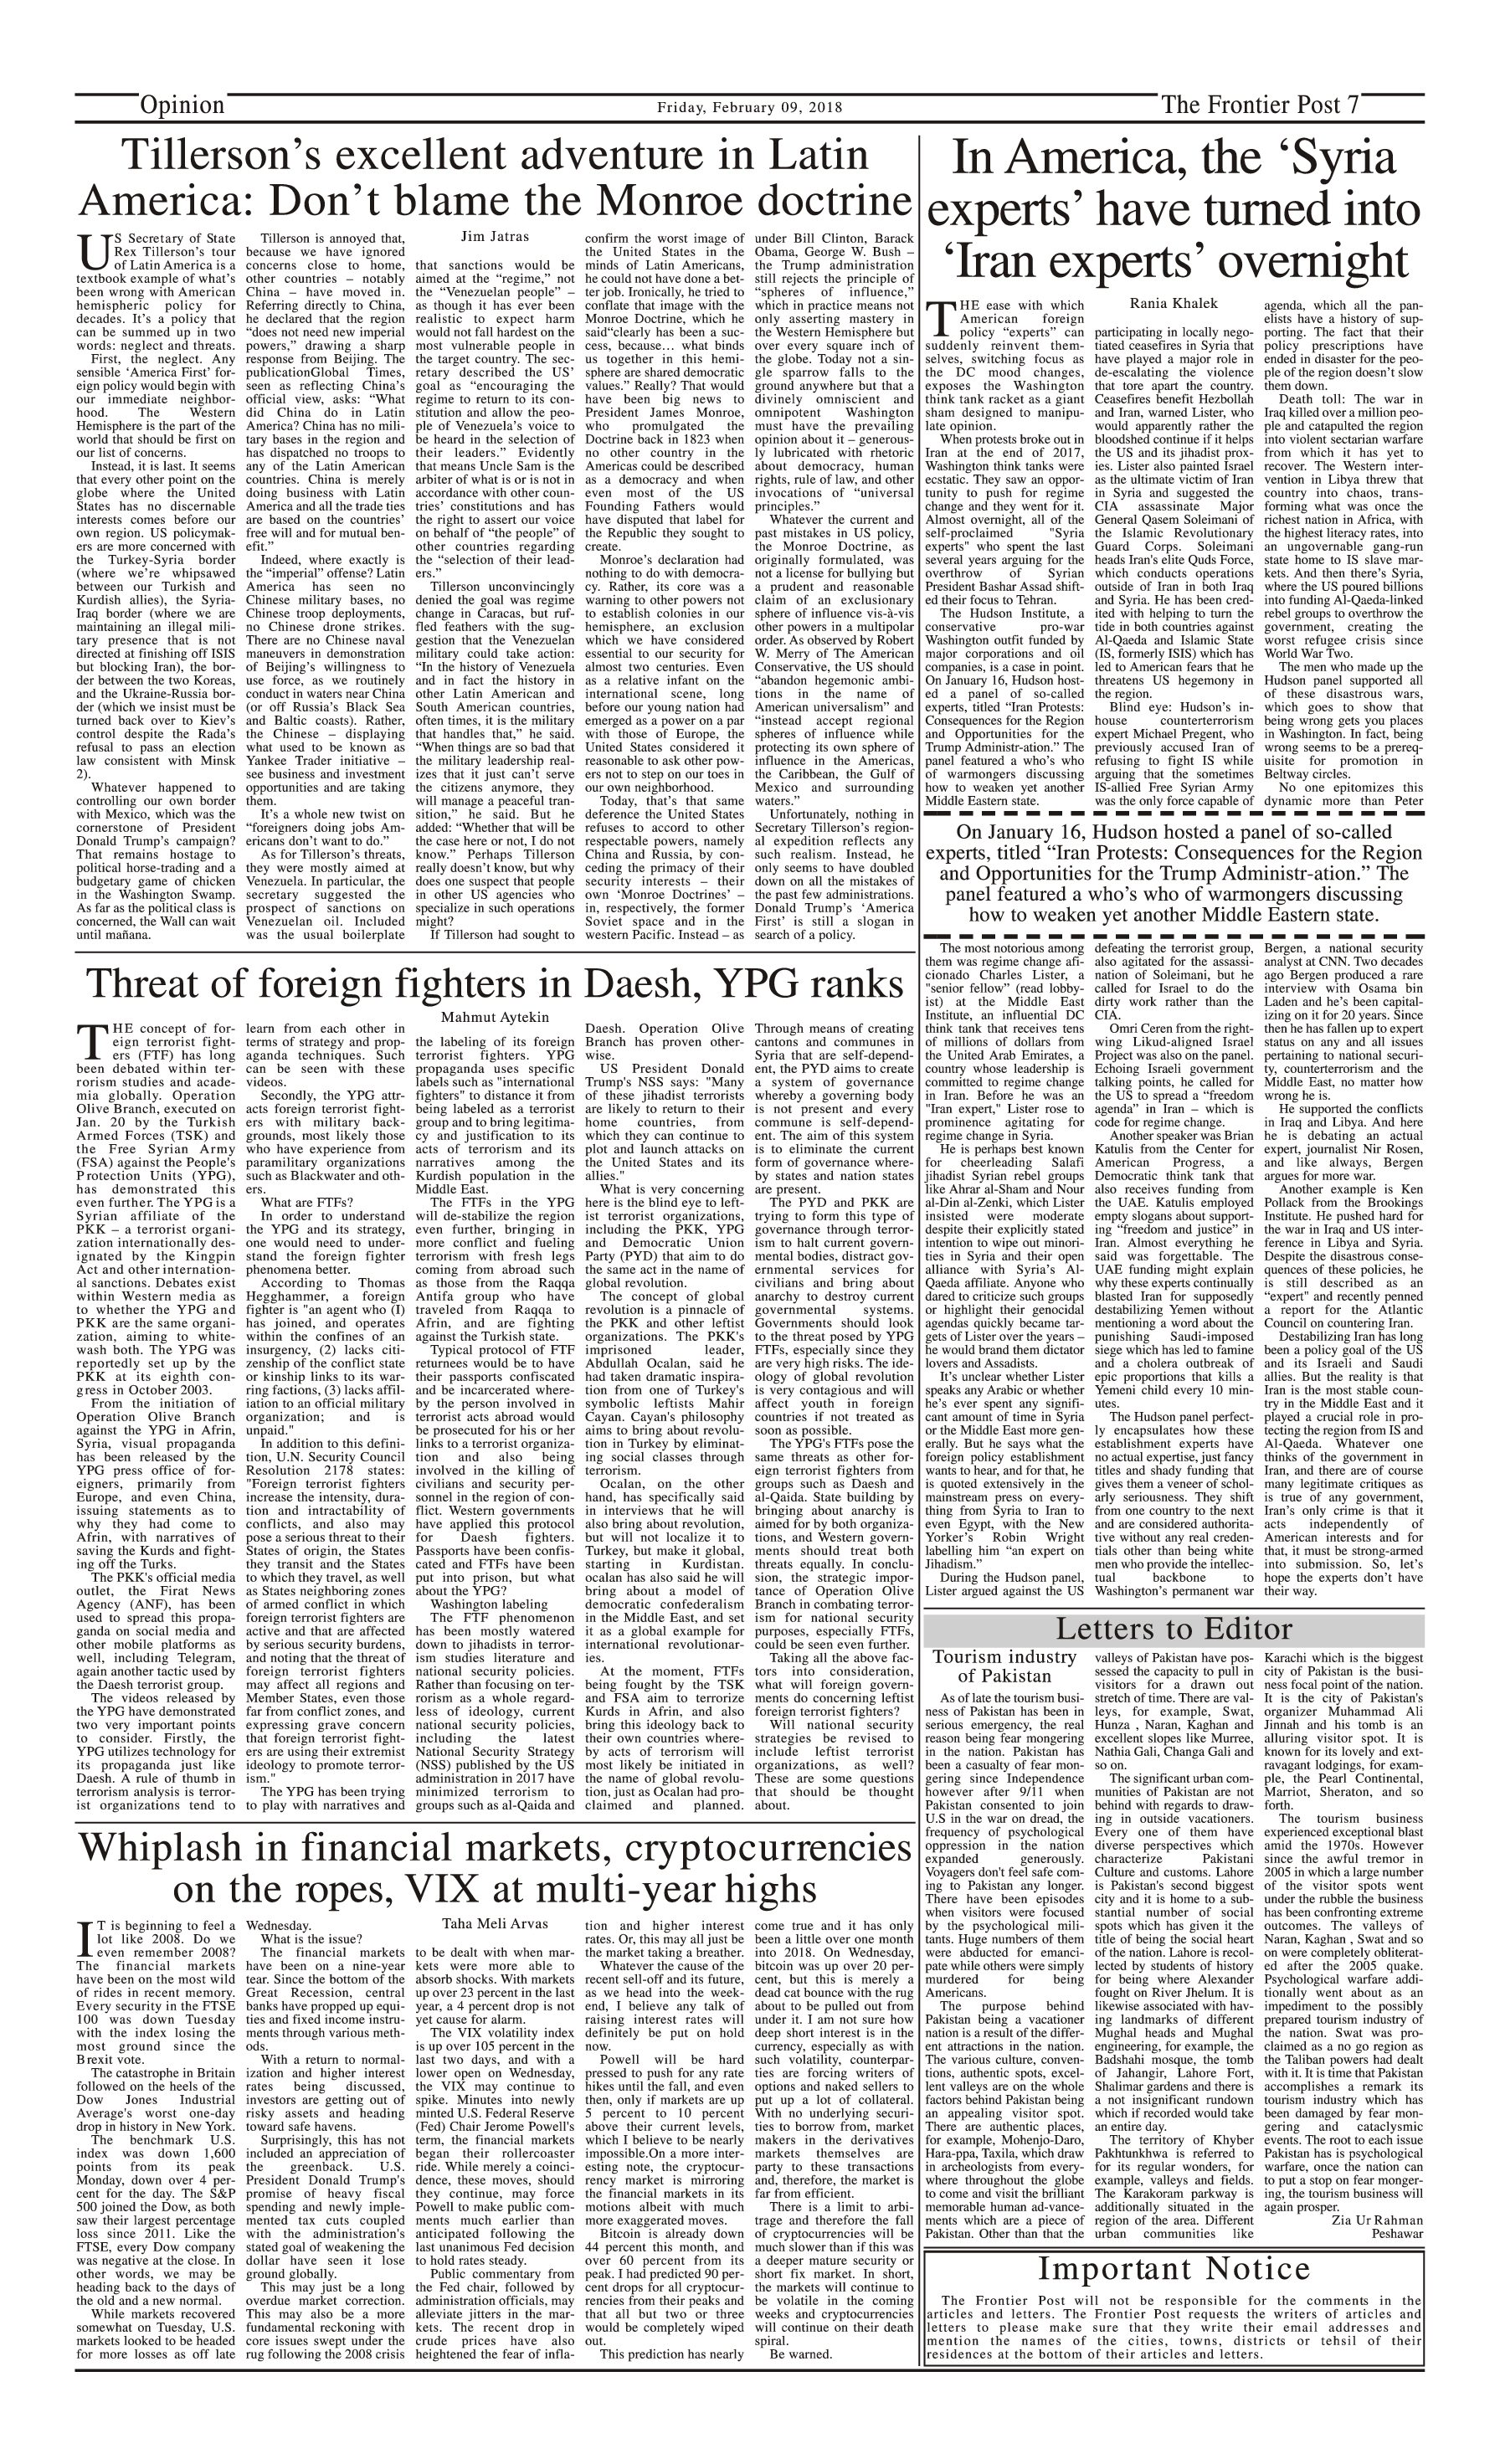 Opinion Page 9-02